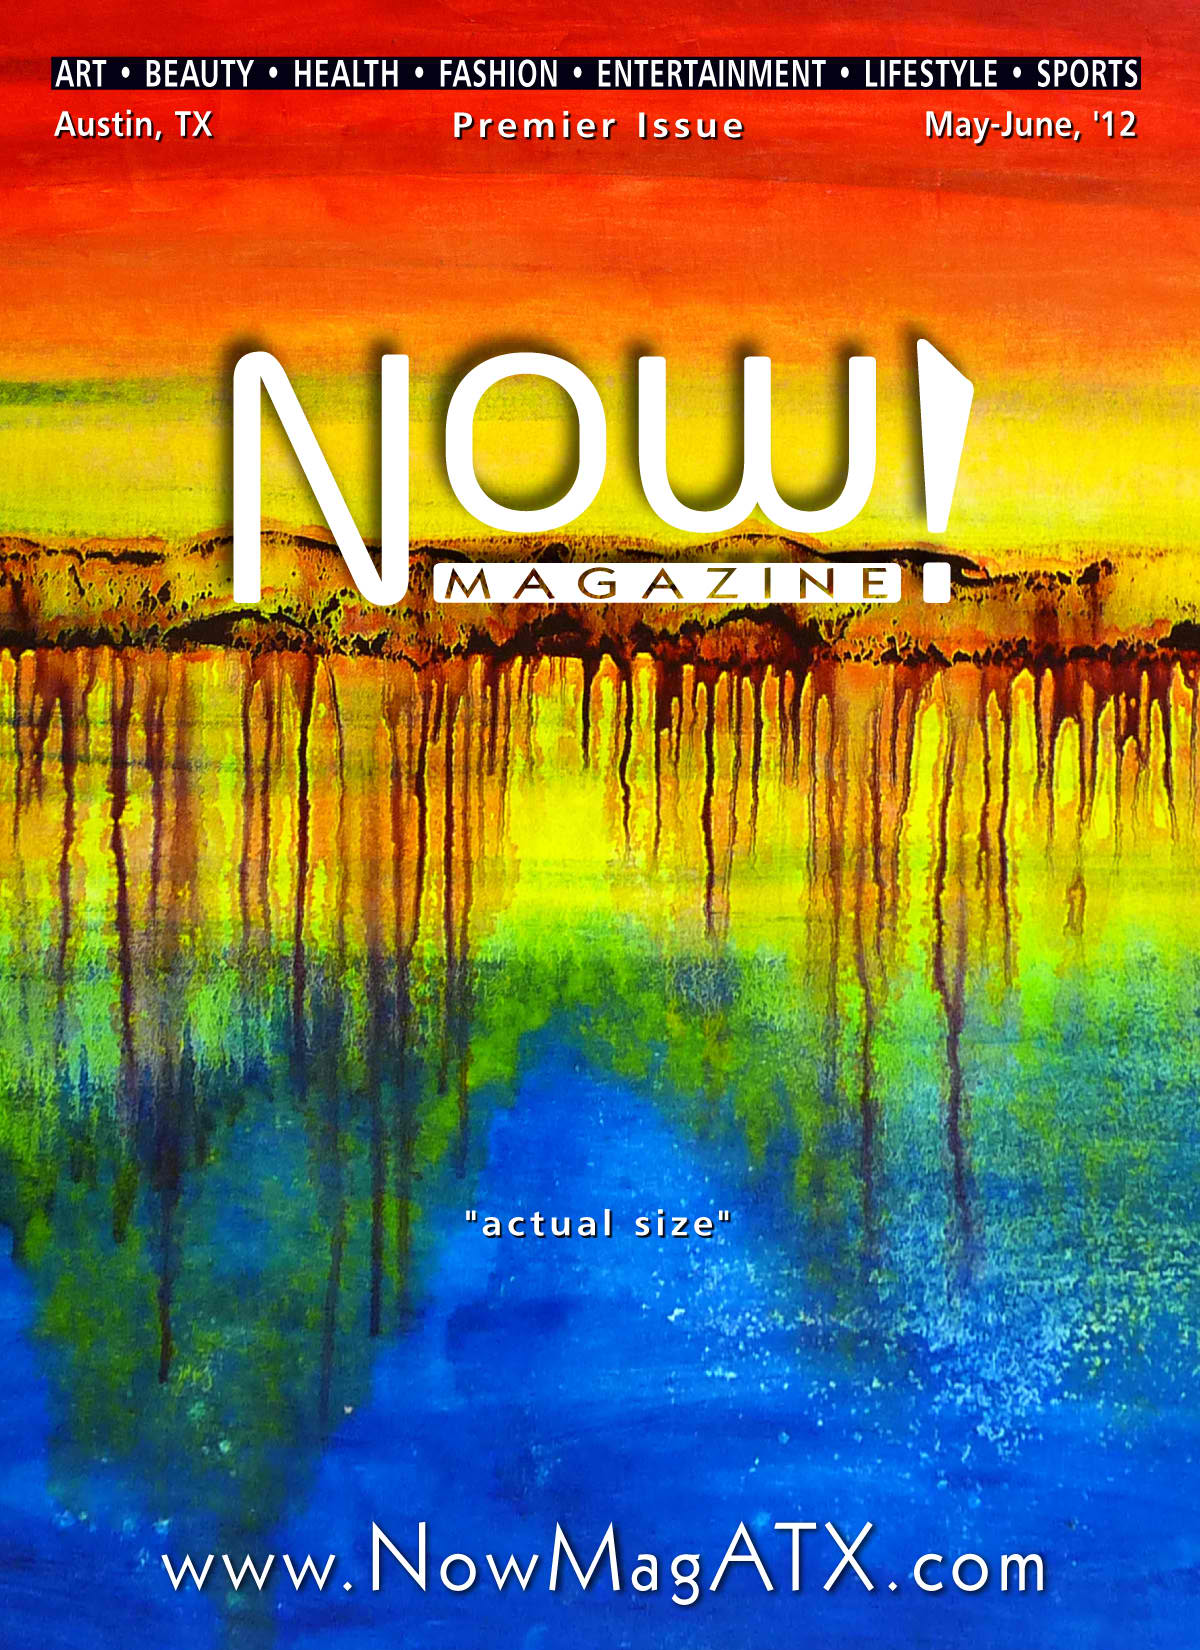 NOW! Magazine Cover featuring artwork by Leanne Venier